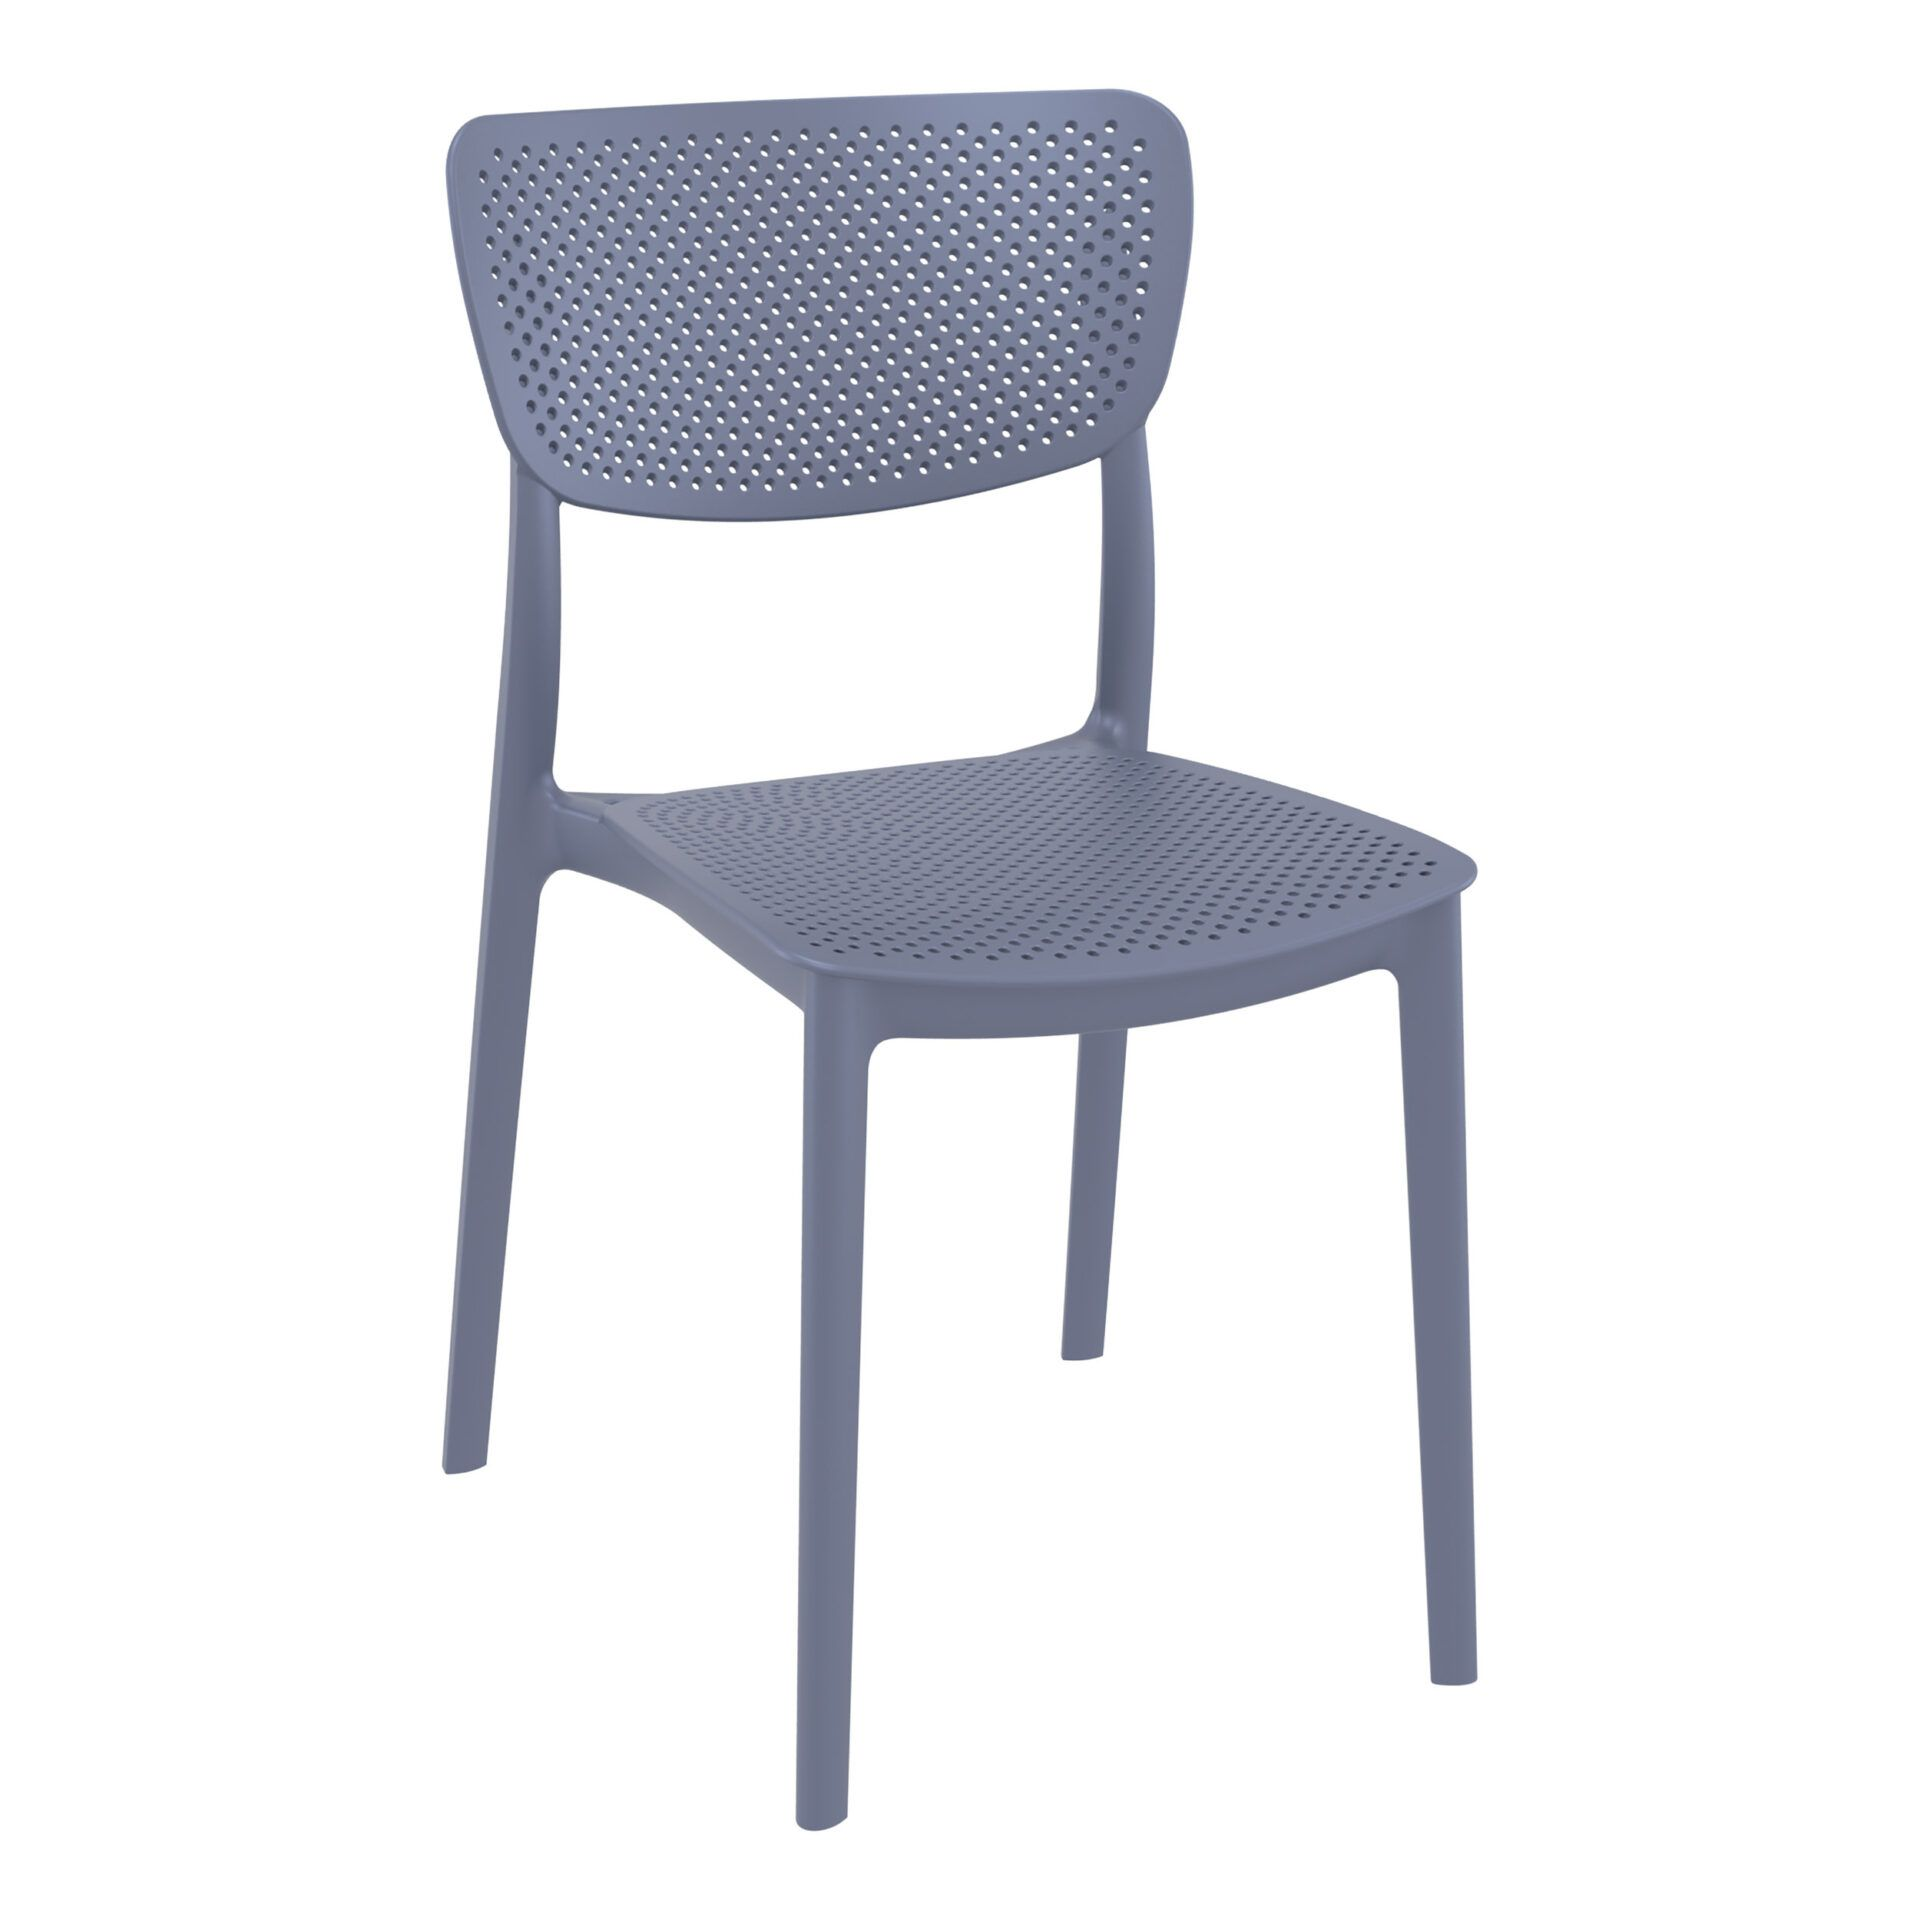 polypropylene hospitality seating lucy chair darkgrey front side